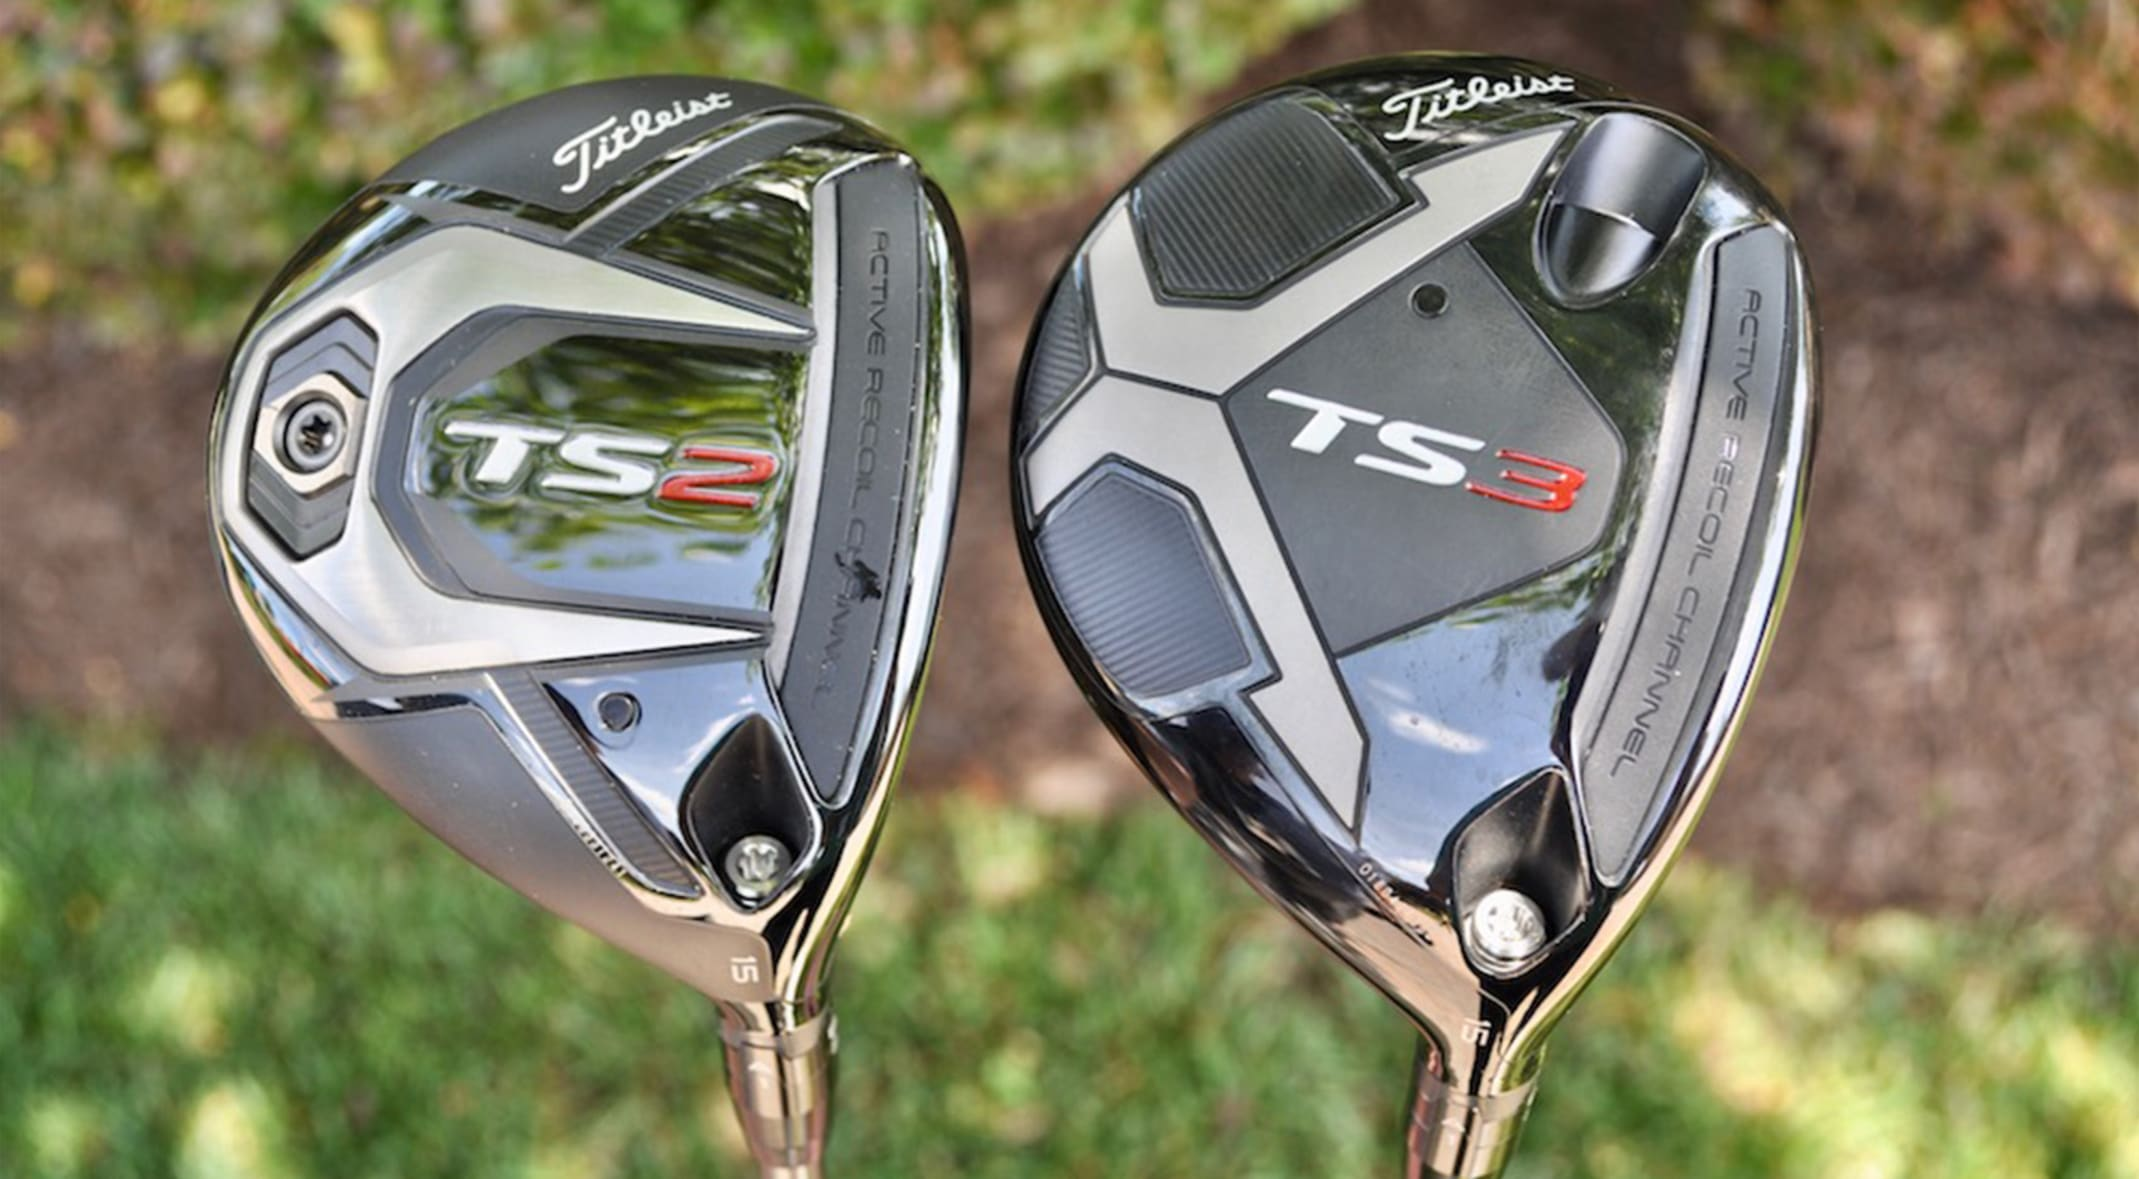 Titleist TS fairway woods debut at Quicken Loans National